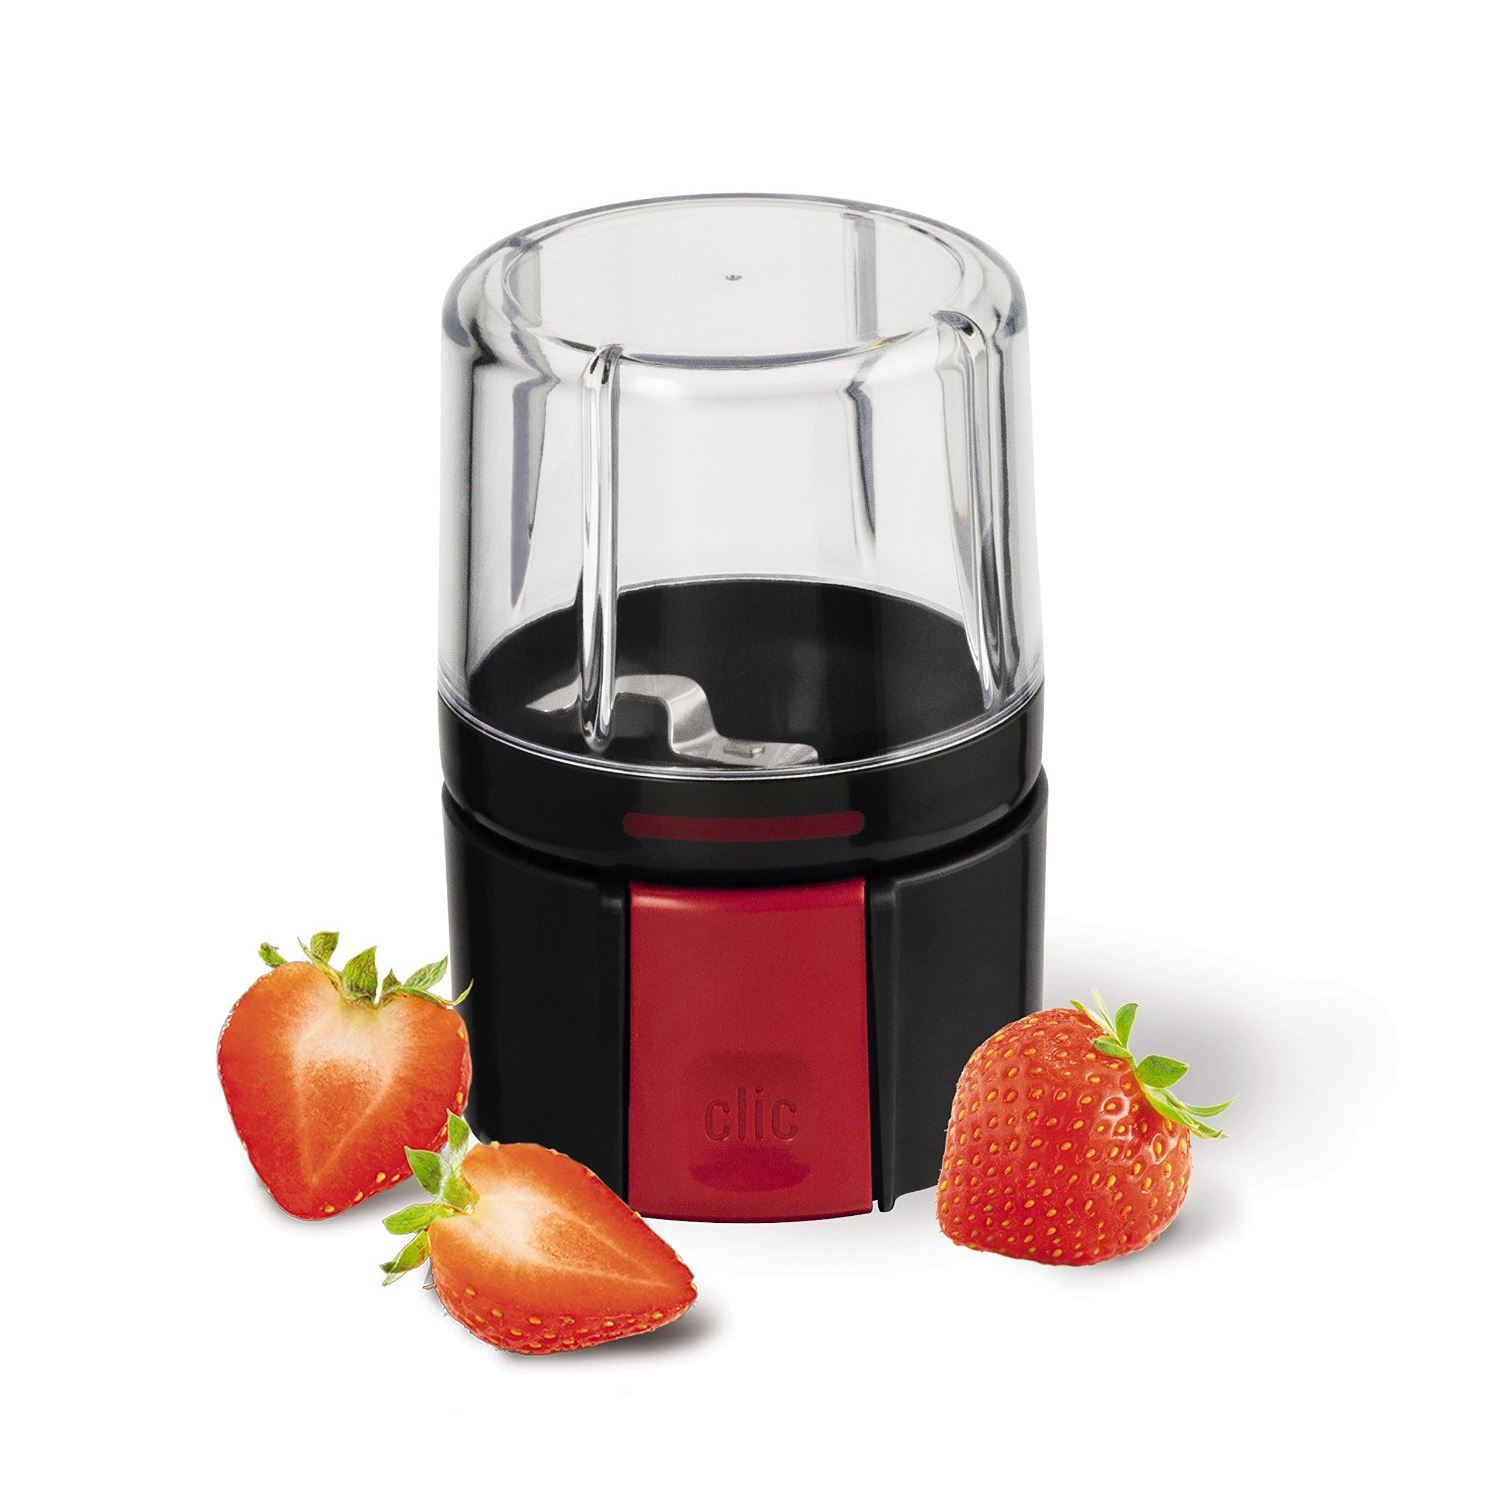 tefal bl142140 mini blender mixer smoothie maker juicer with chopper grinder new ebay. Black Bedroom Furniture Sets. Home Design Ideas